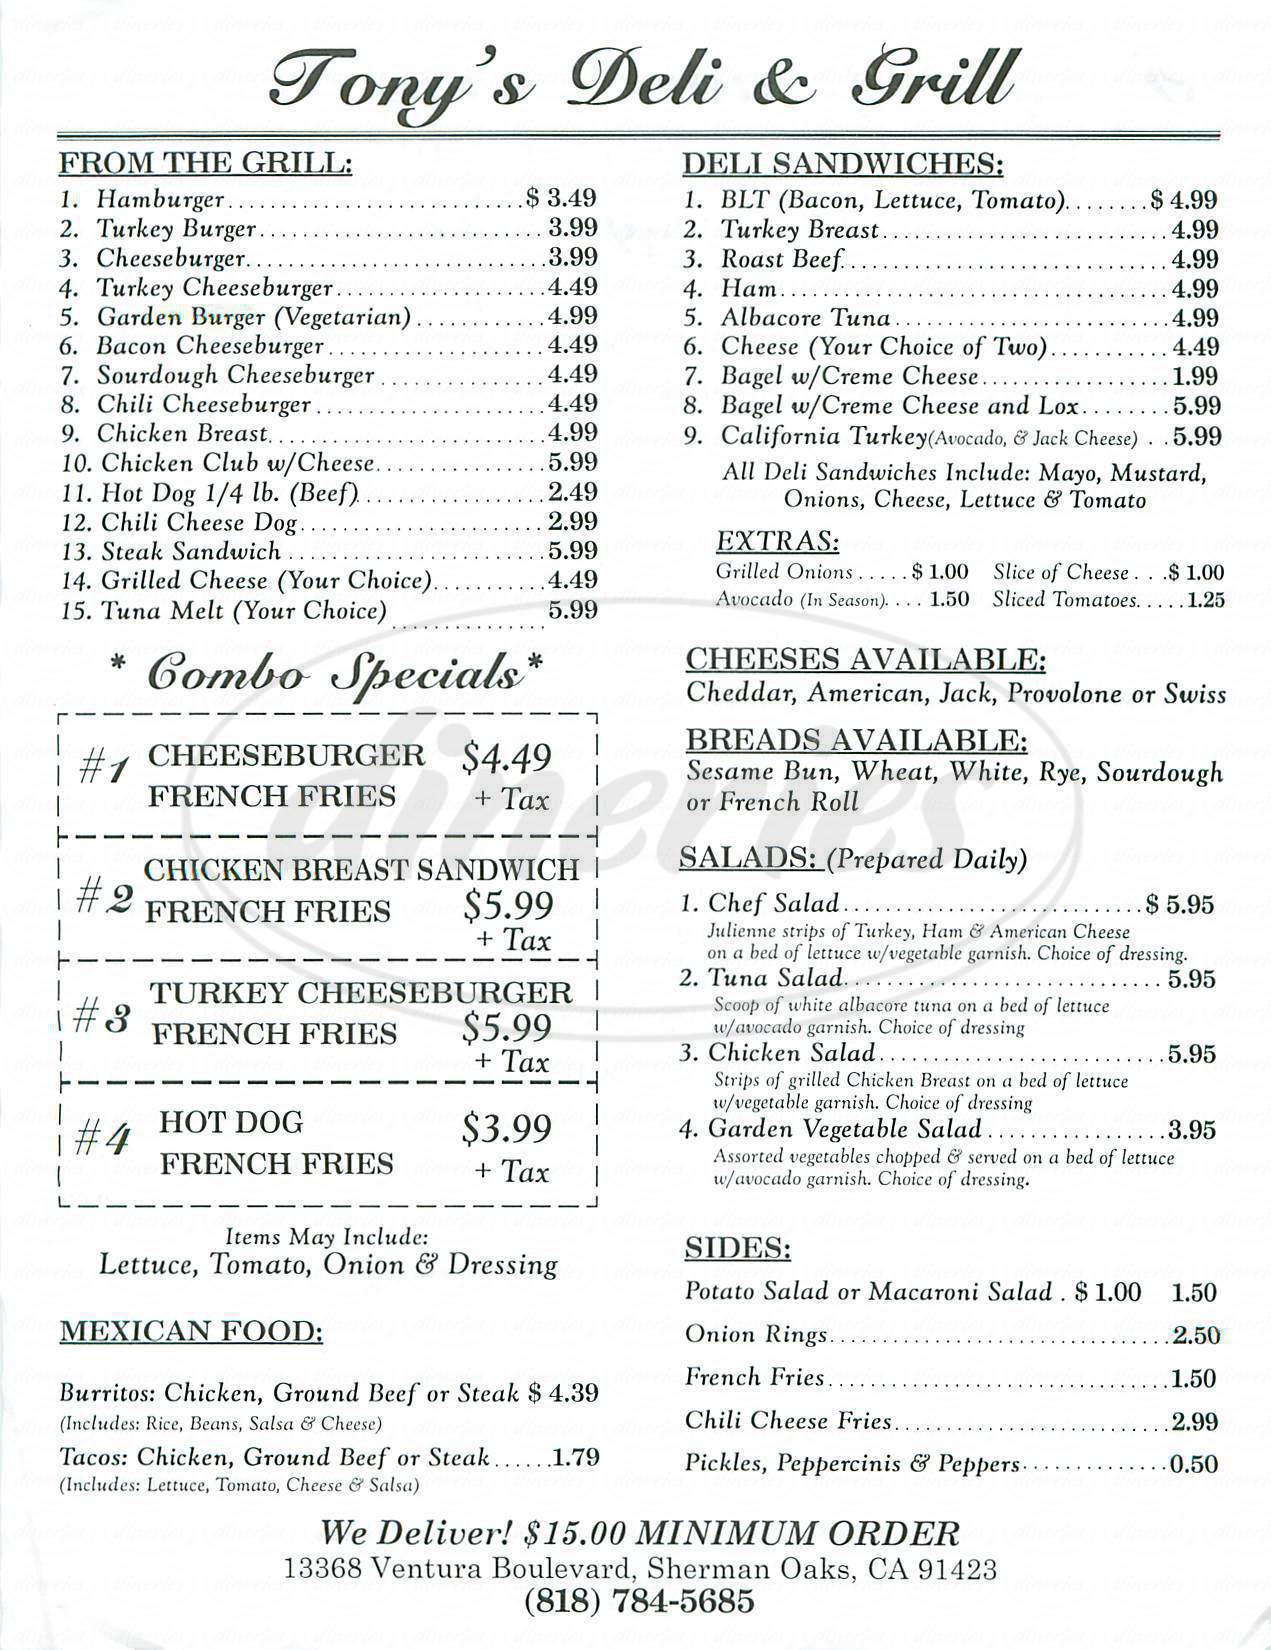 menu for Tony's Deli & Grill